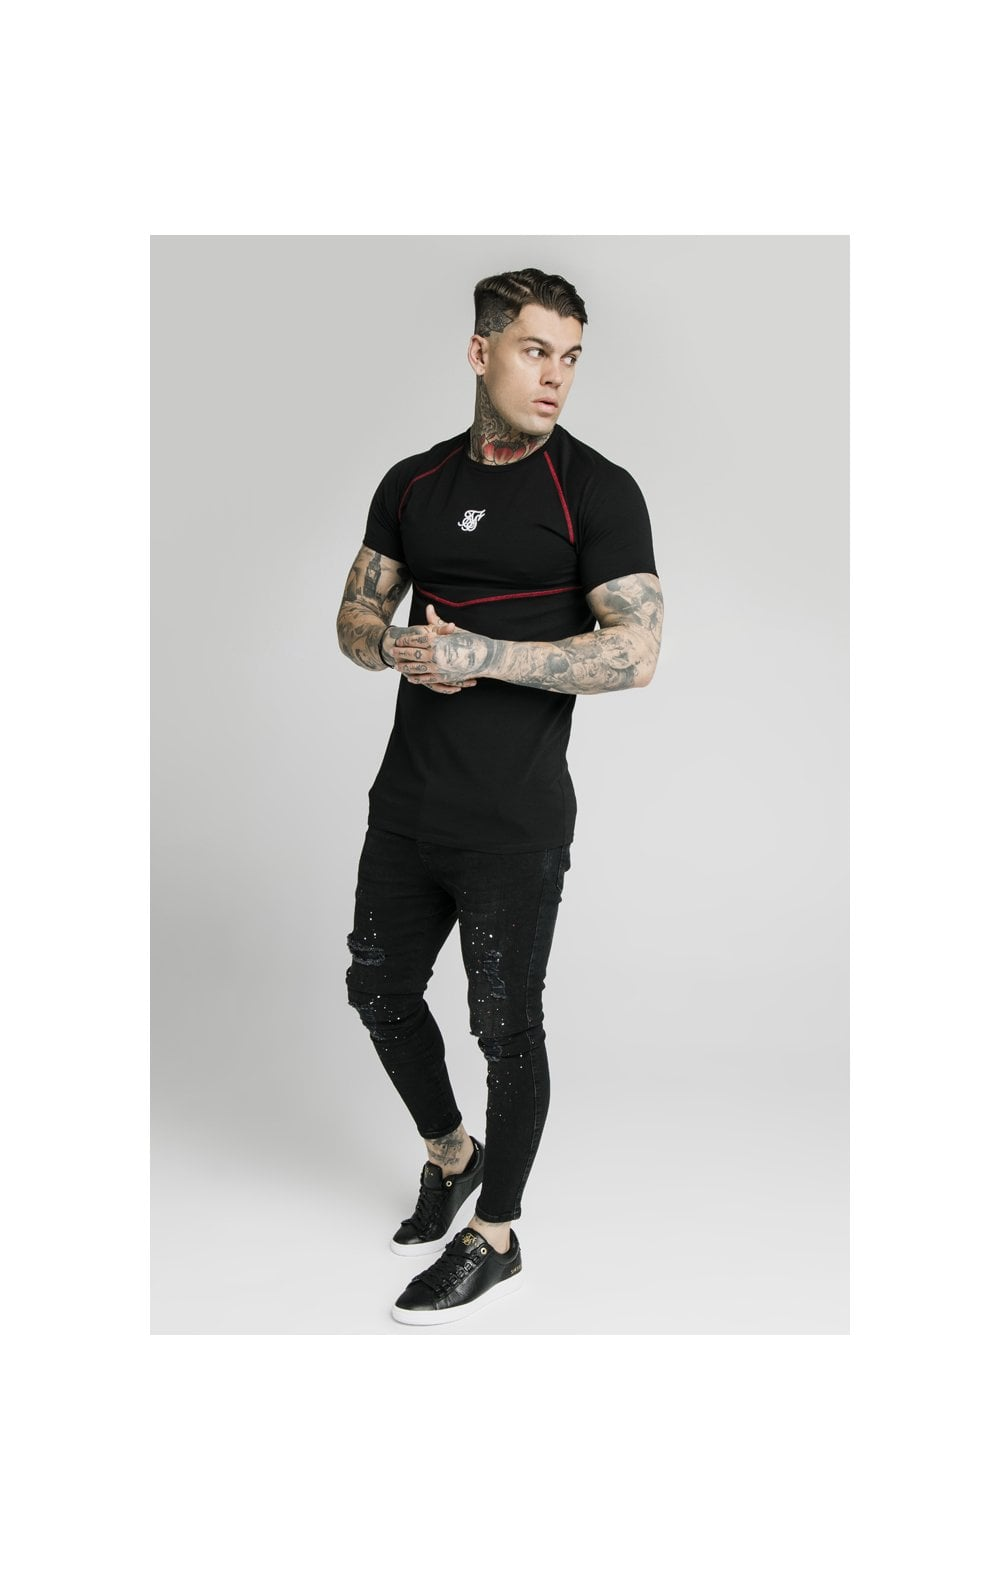 SikSilk Cover Stitch Raglan Gym Tee - Black & Red (2)